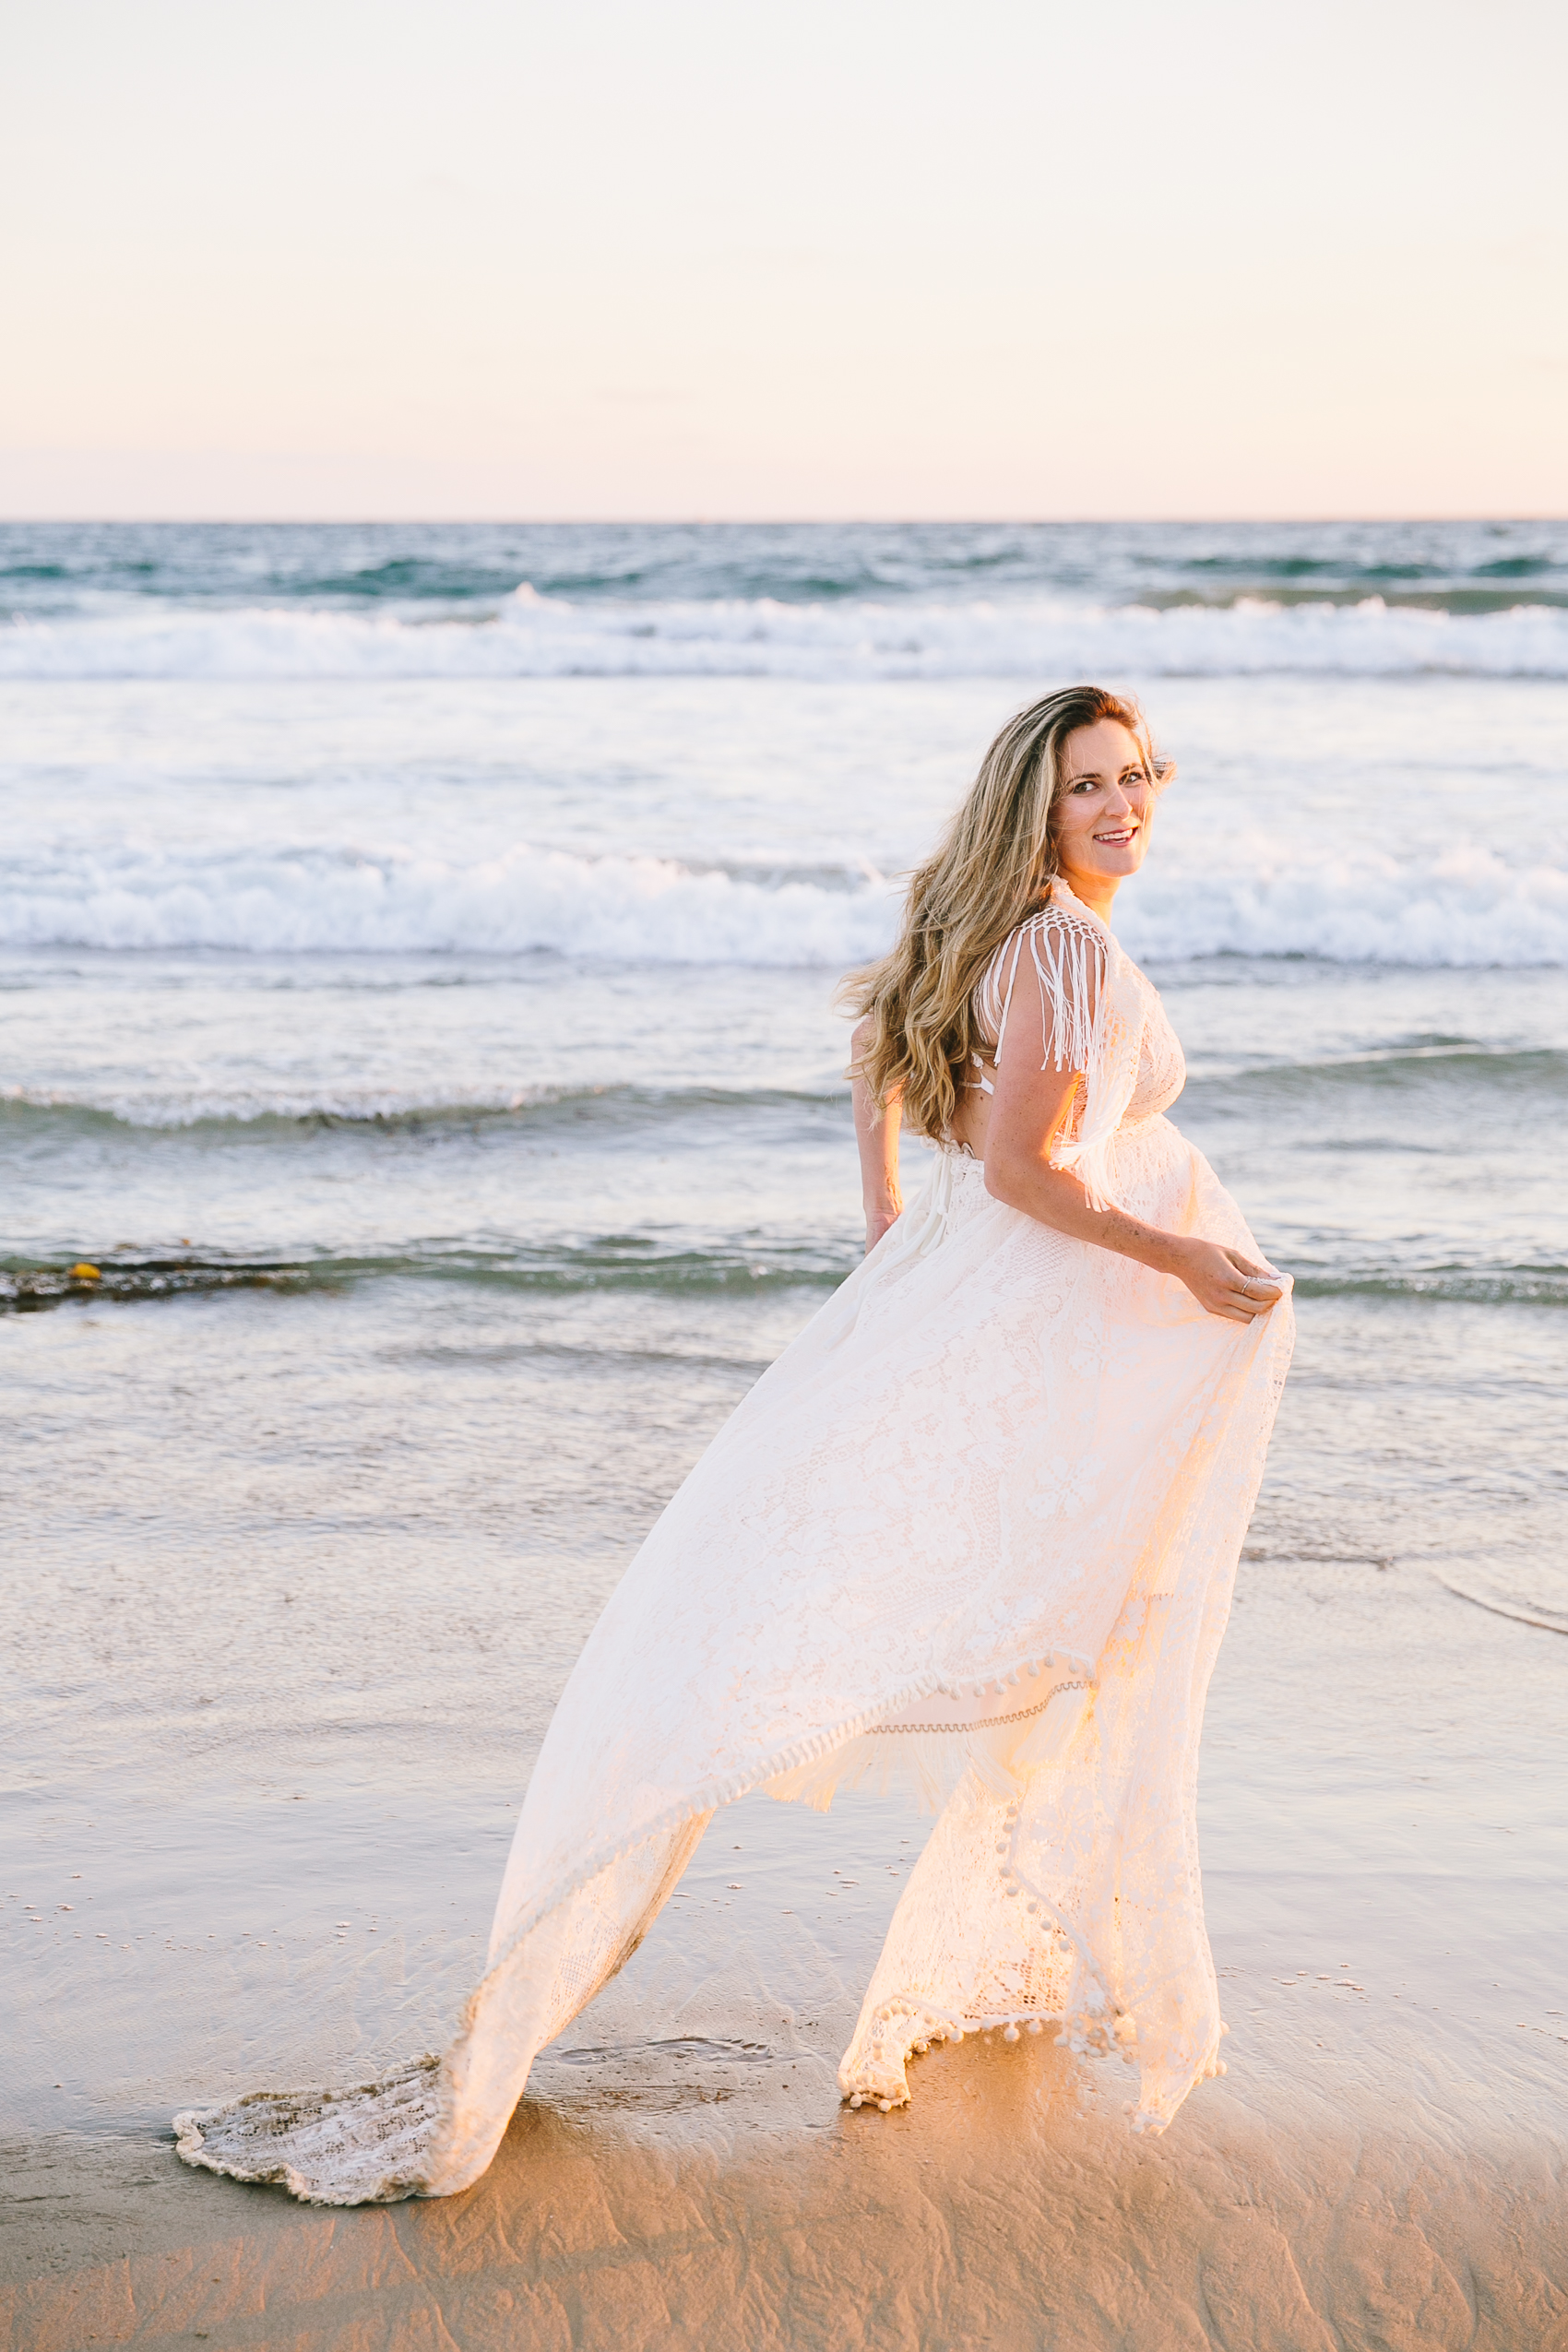 Los_Angeles_Family_Photographer_Maternity_Photos_Baby_Pregnancy_Venice_Beach_Golden_Hour-1223.jpg